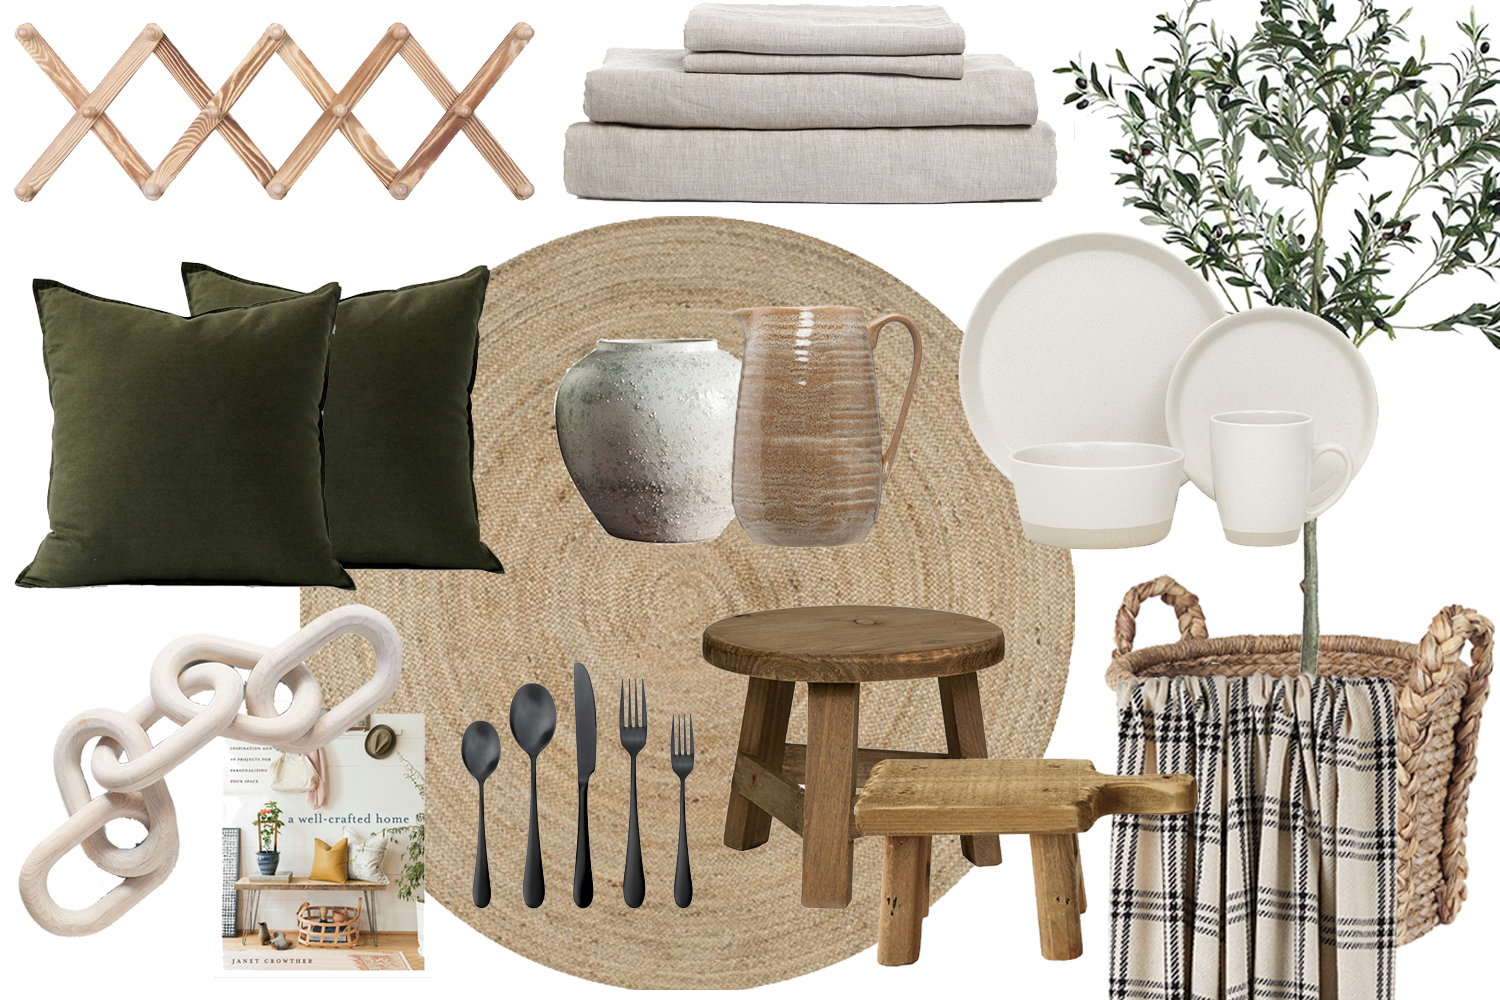 Check Out My 15 Neutral Decor Favorites From Amazon